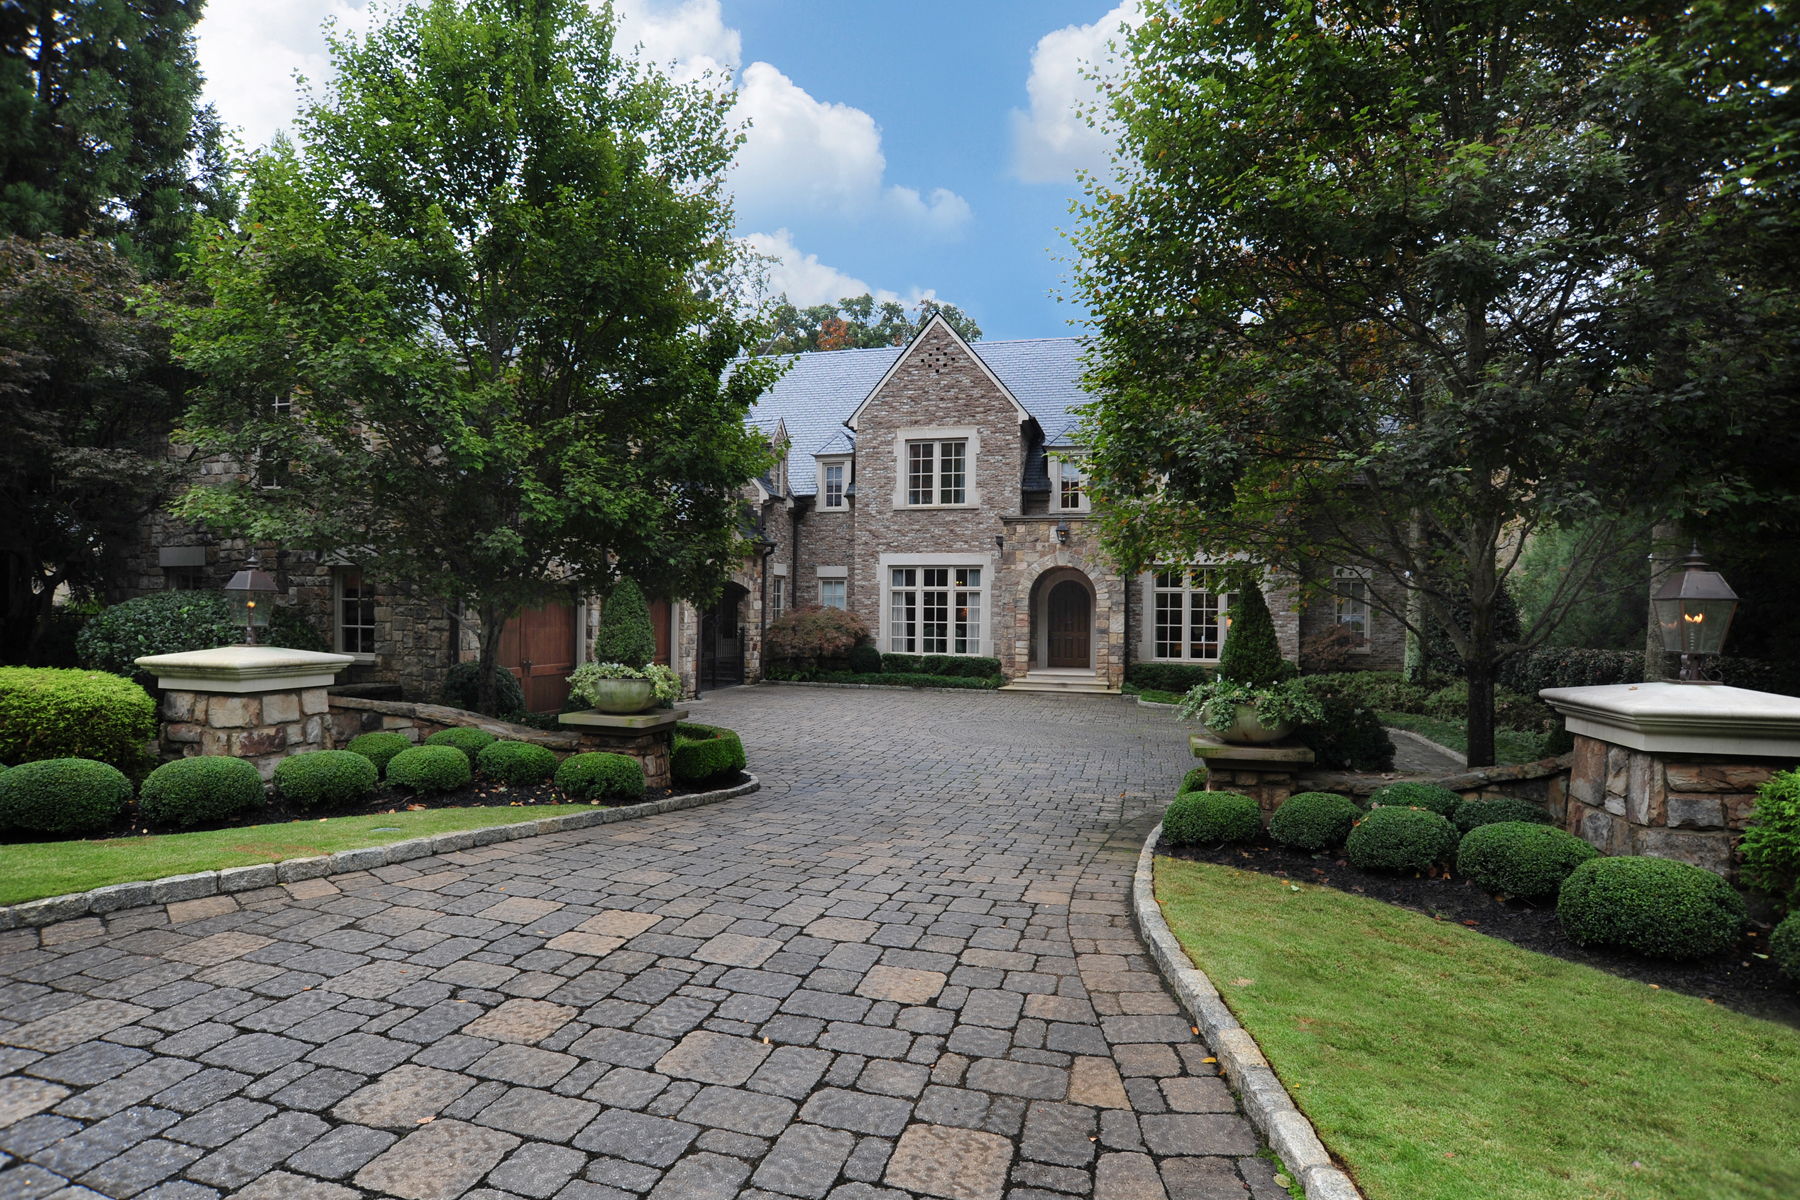 Maison unifamiliale pour l Vente à Refined Elegance In Atlanta's Most Prestigious Neighborhood 675 West Paces Ferry Road NW Home 4 Buckhead, Atlanta, Georgia, 30327 États-Unis